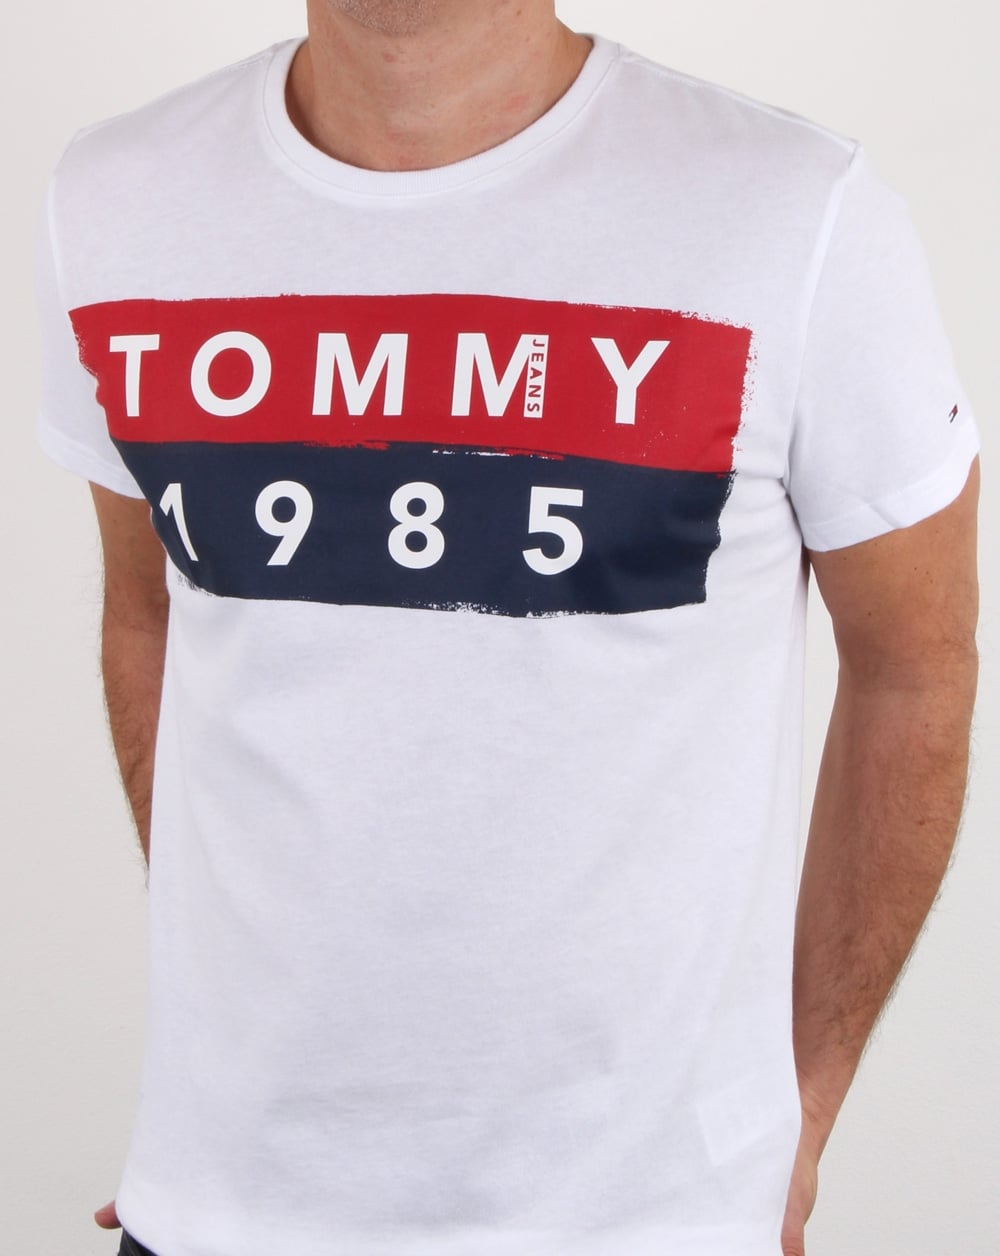 d612a135 Tommy Hilfiger 1985 Logo T Shirt White,tee,cotton,crew .